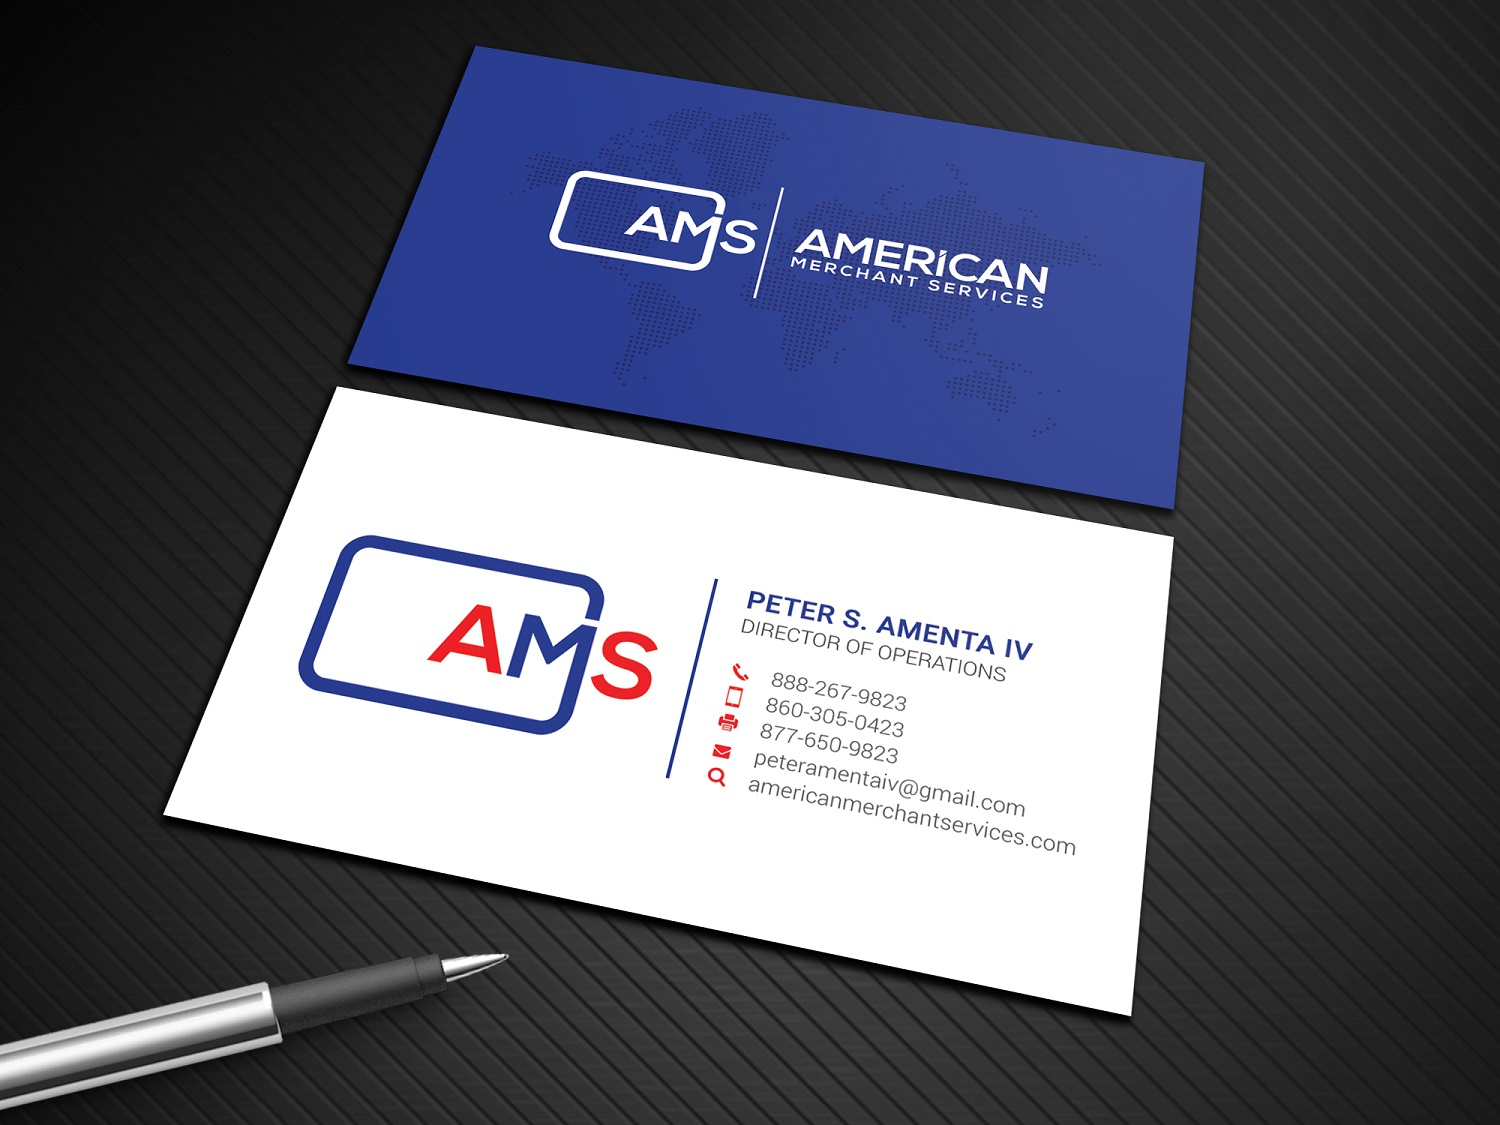 Elegant playful credit card business card design for american business card design by graphic flame for american merchant services llc design 15373563 reheart Image collections